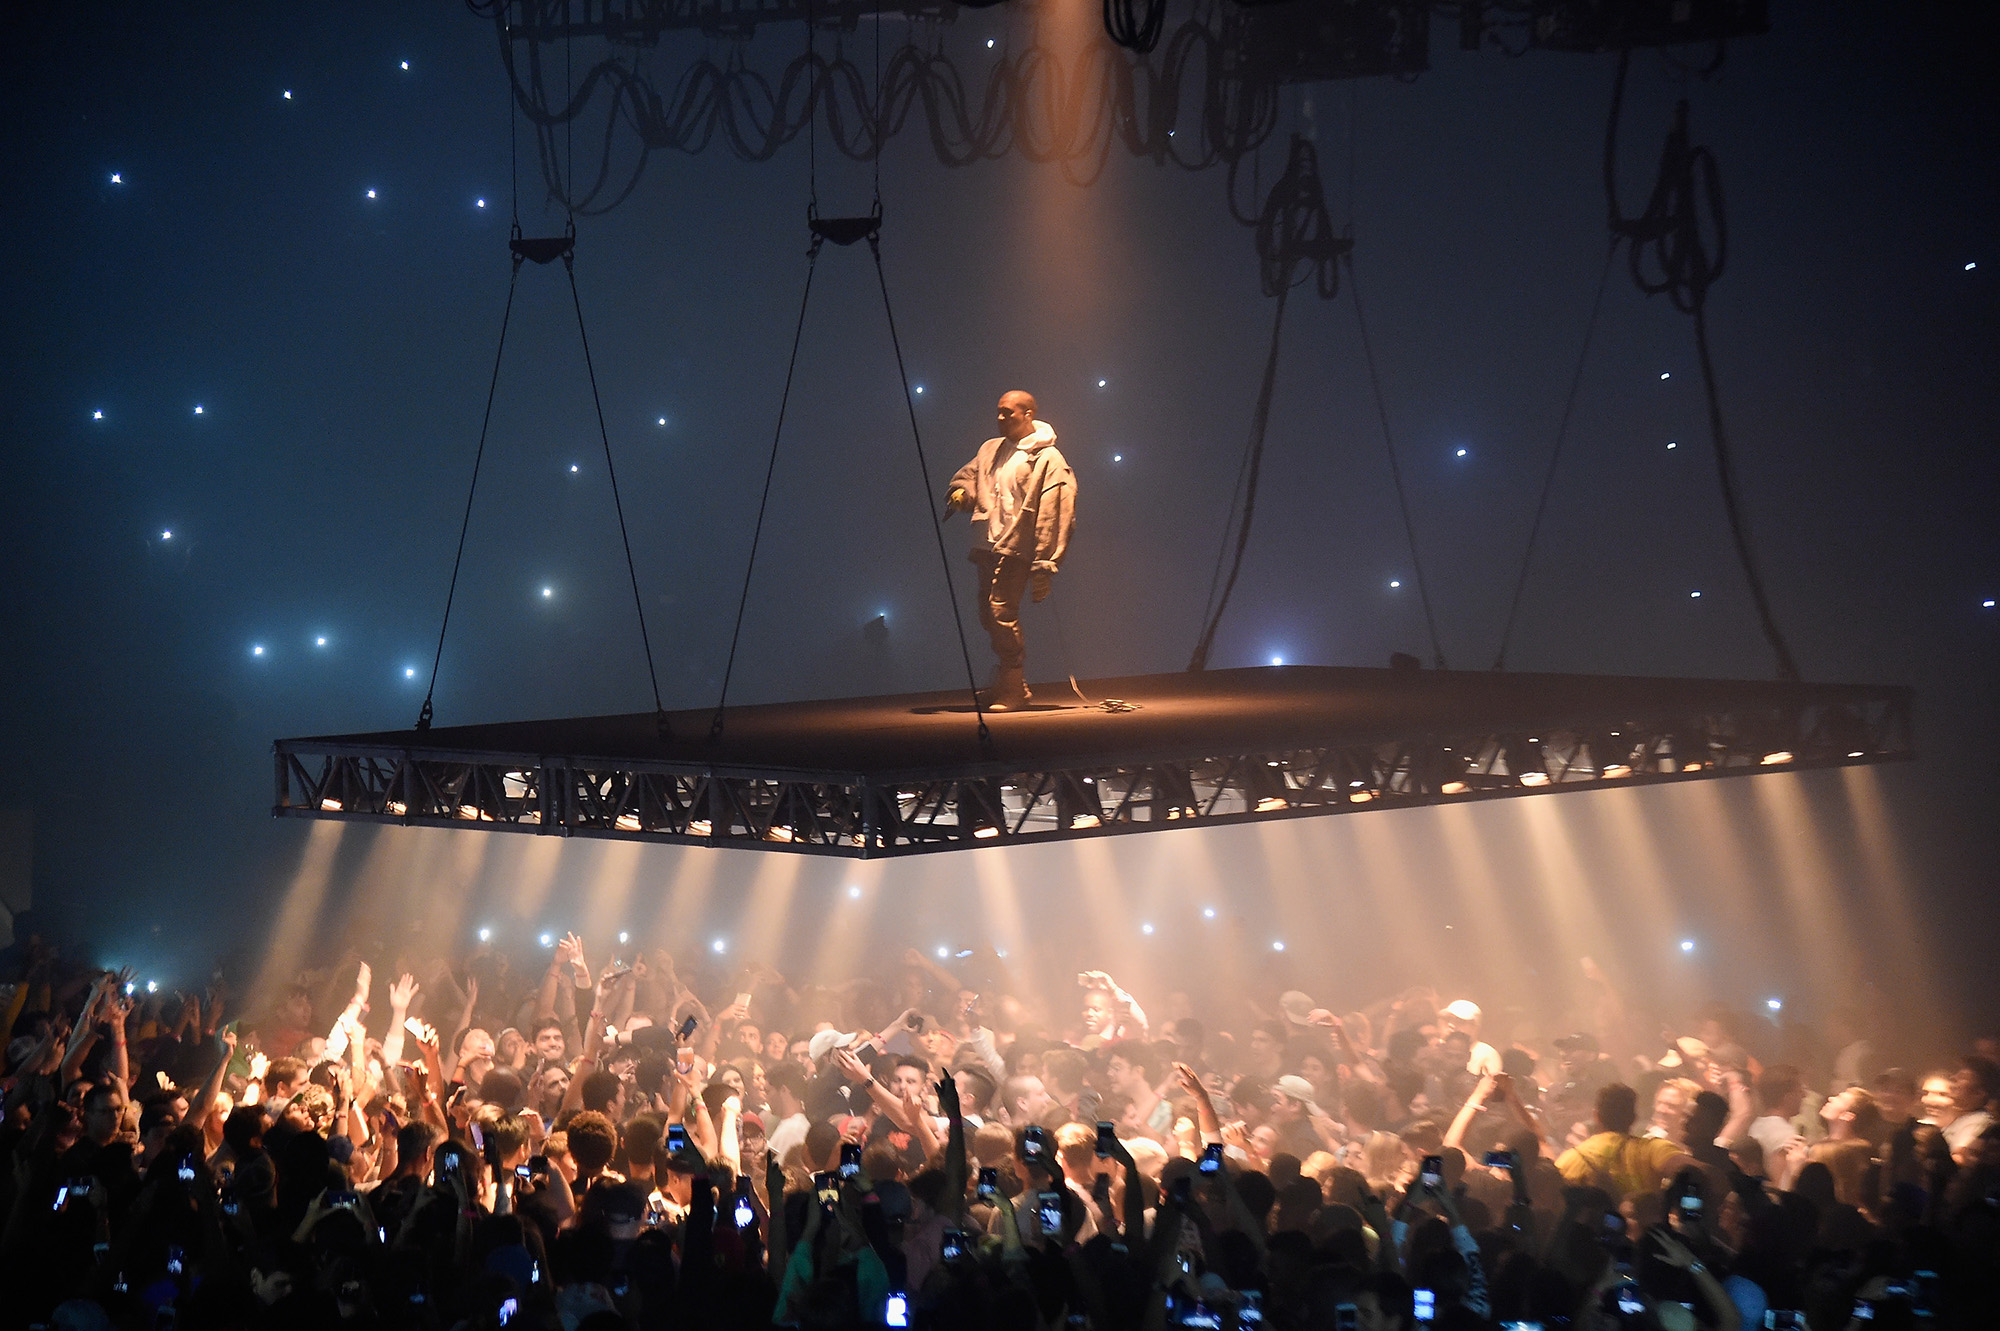 Kanye West performs during The Saint Pablo Tour at Madison Square Garden on September 5, 2016 in New York City.  (Photo by Kevin Mazur/Getty Images)